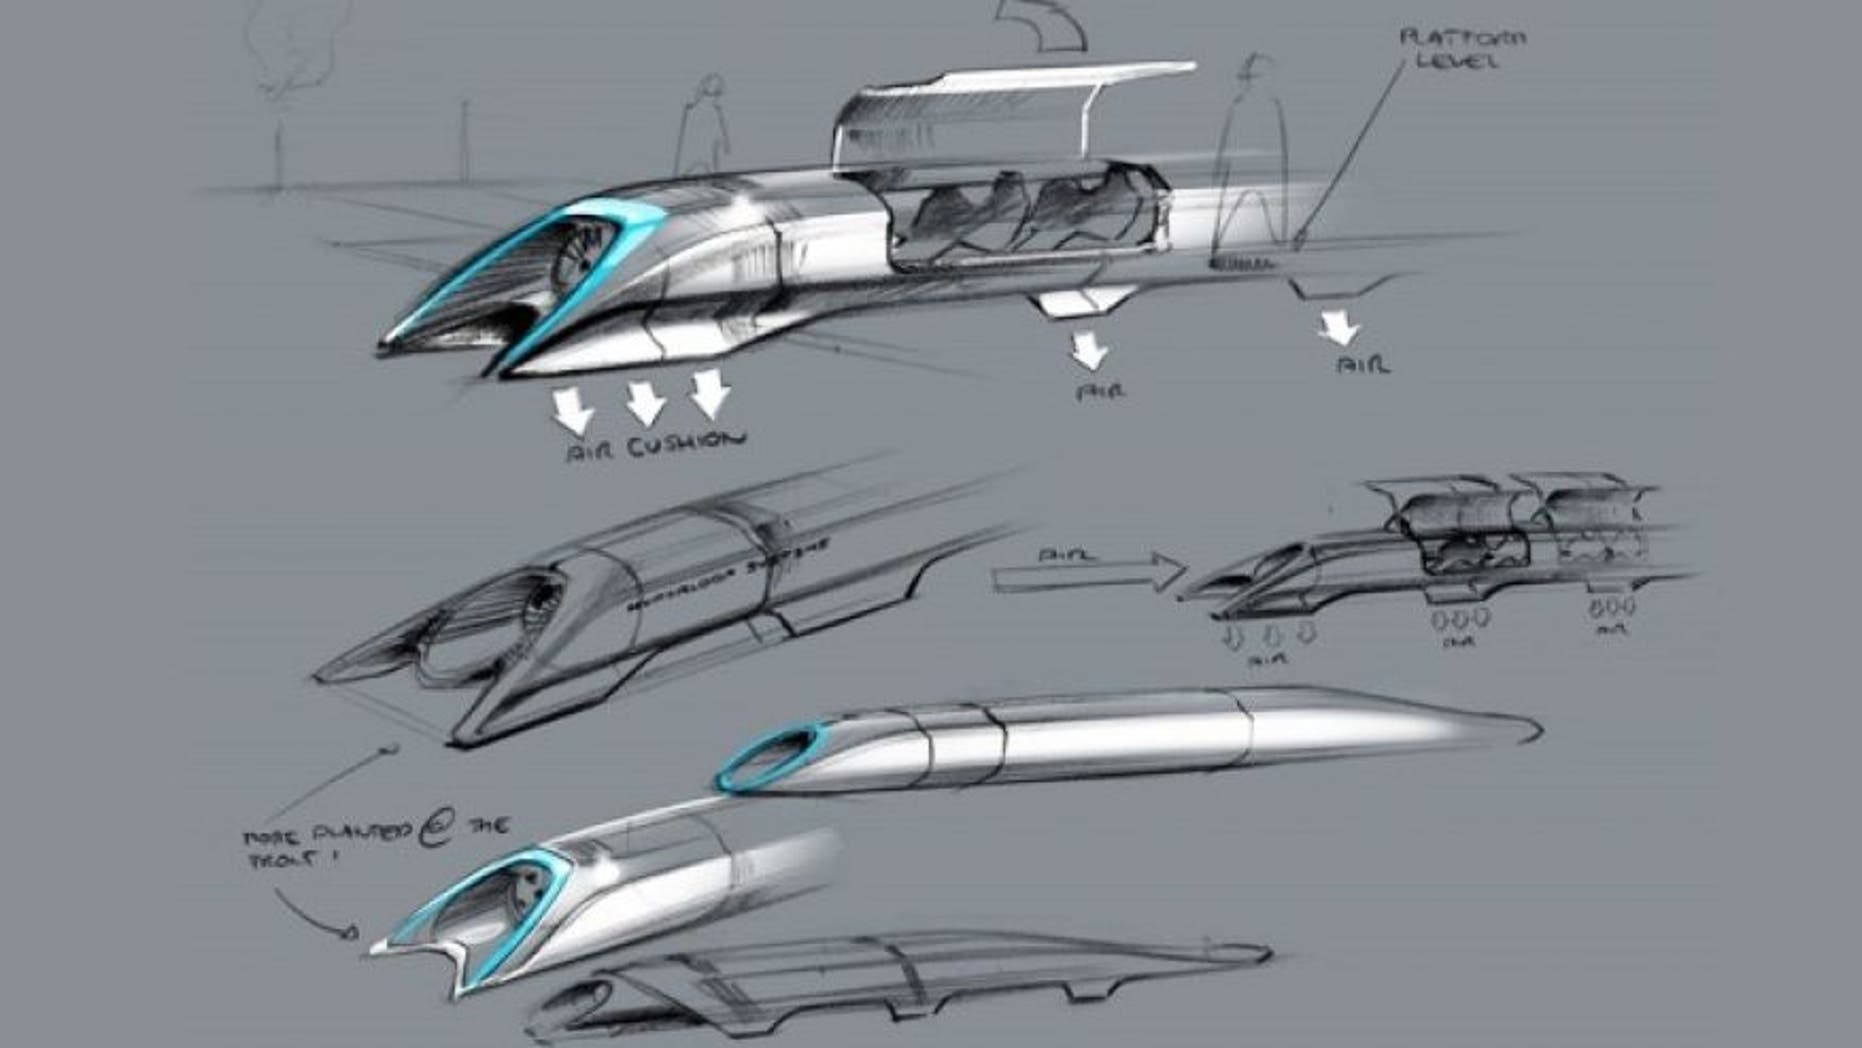 Aug. 12, 2013: Concept sketches for the Hyperloop transportation system, which uses electromagnets and pneumatic tubes to transport people (and cars) at up to 800 miles per hour. (Elon Musk)